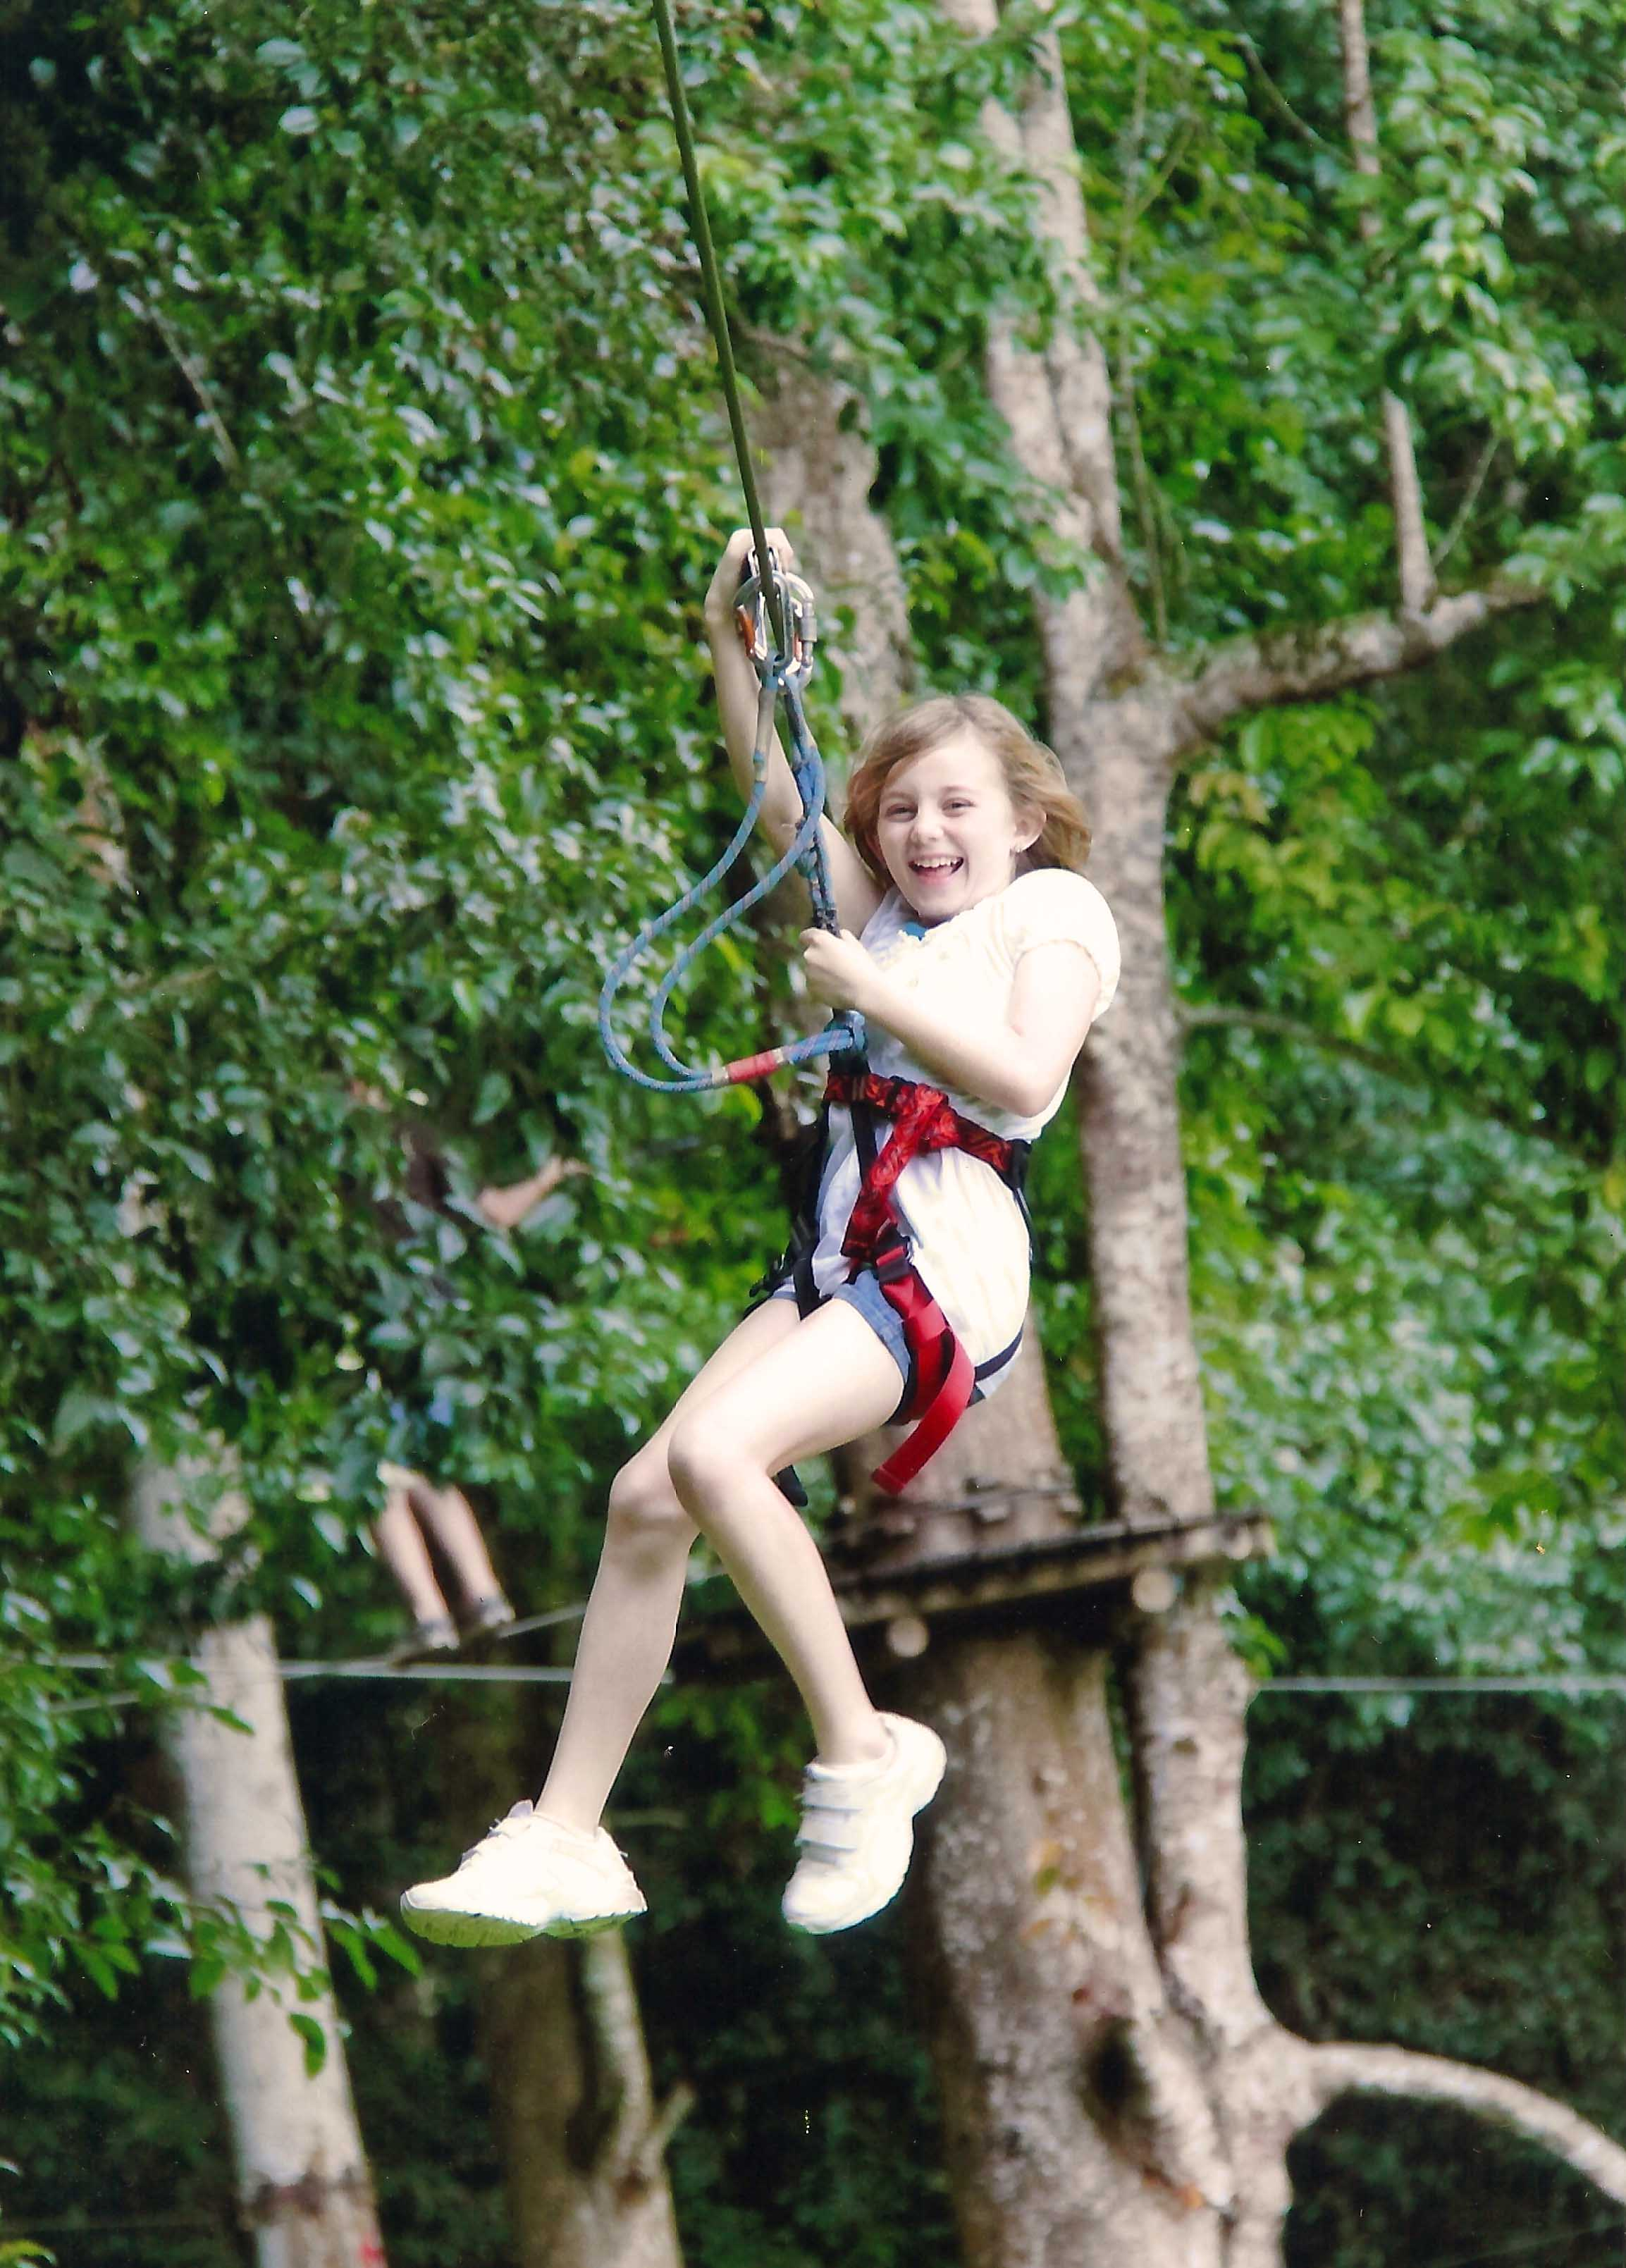 zipline via claytonchronicle